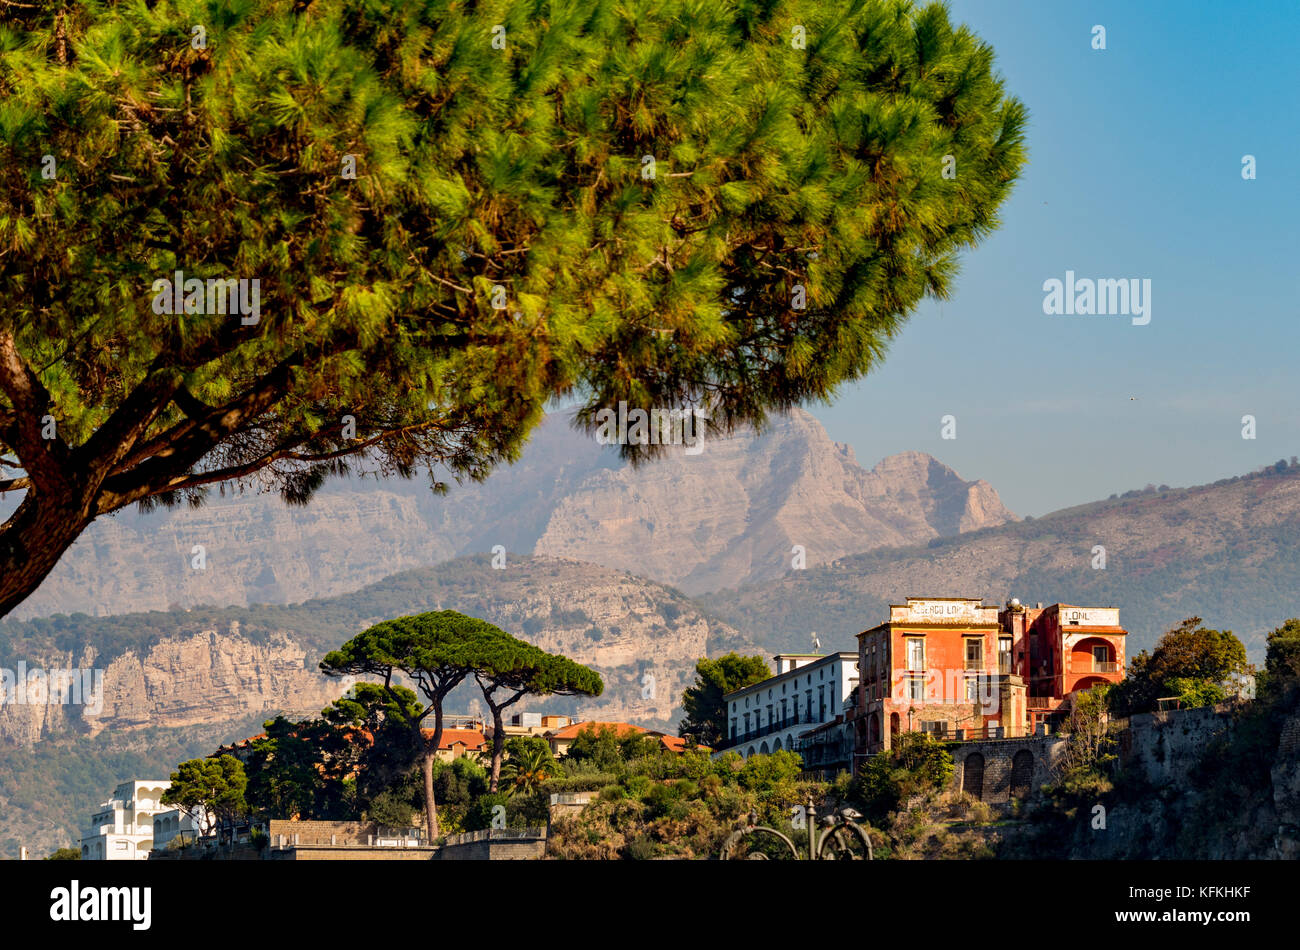 Stone Pine trees and hotels on the cliff top coastline of Sorrento, with mountains in the distance. Sorrento. Italy. - Stock Image